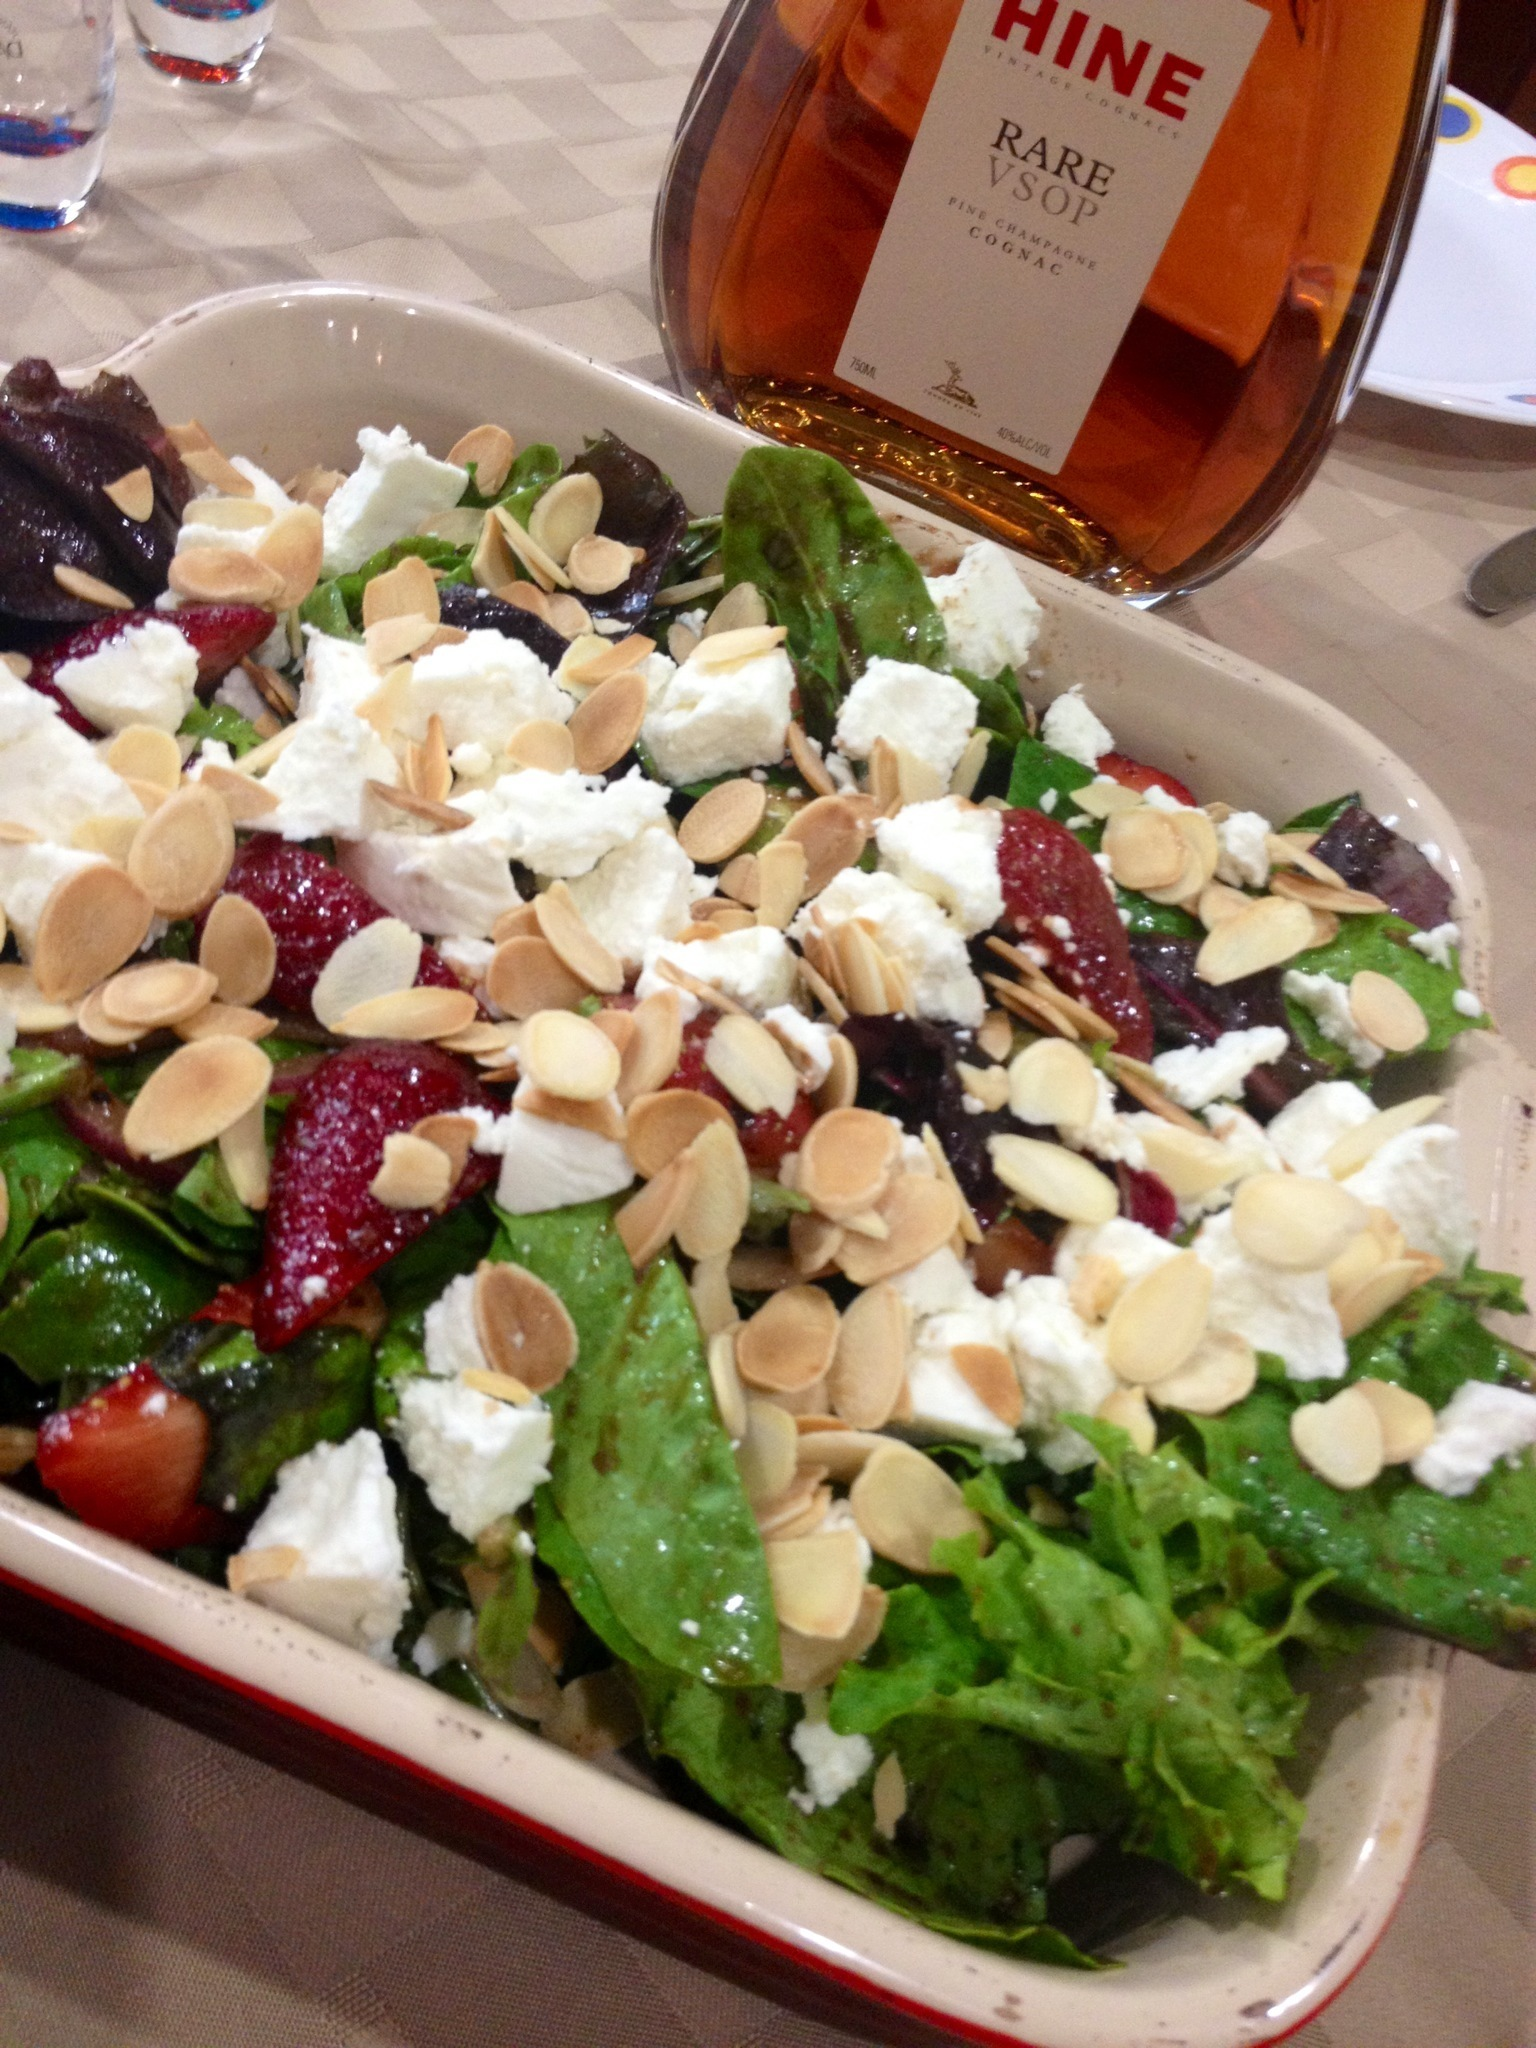 Sweet and Savory: Salad with Strawberries, Goat Cheese and Toasted Almond